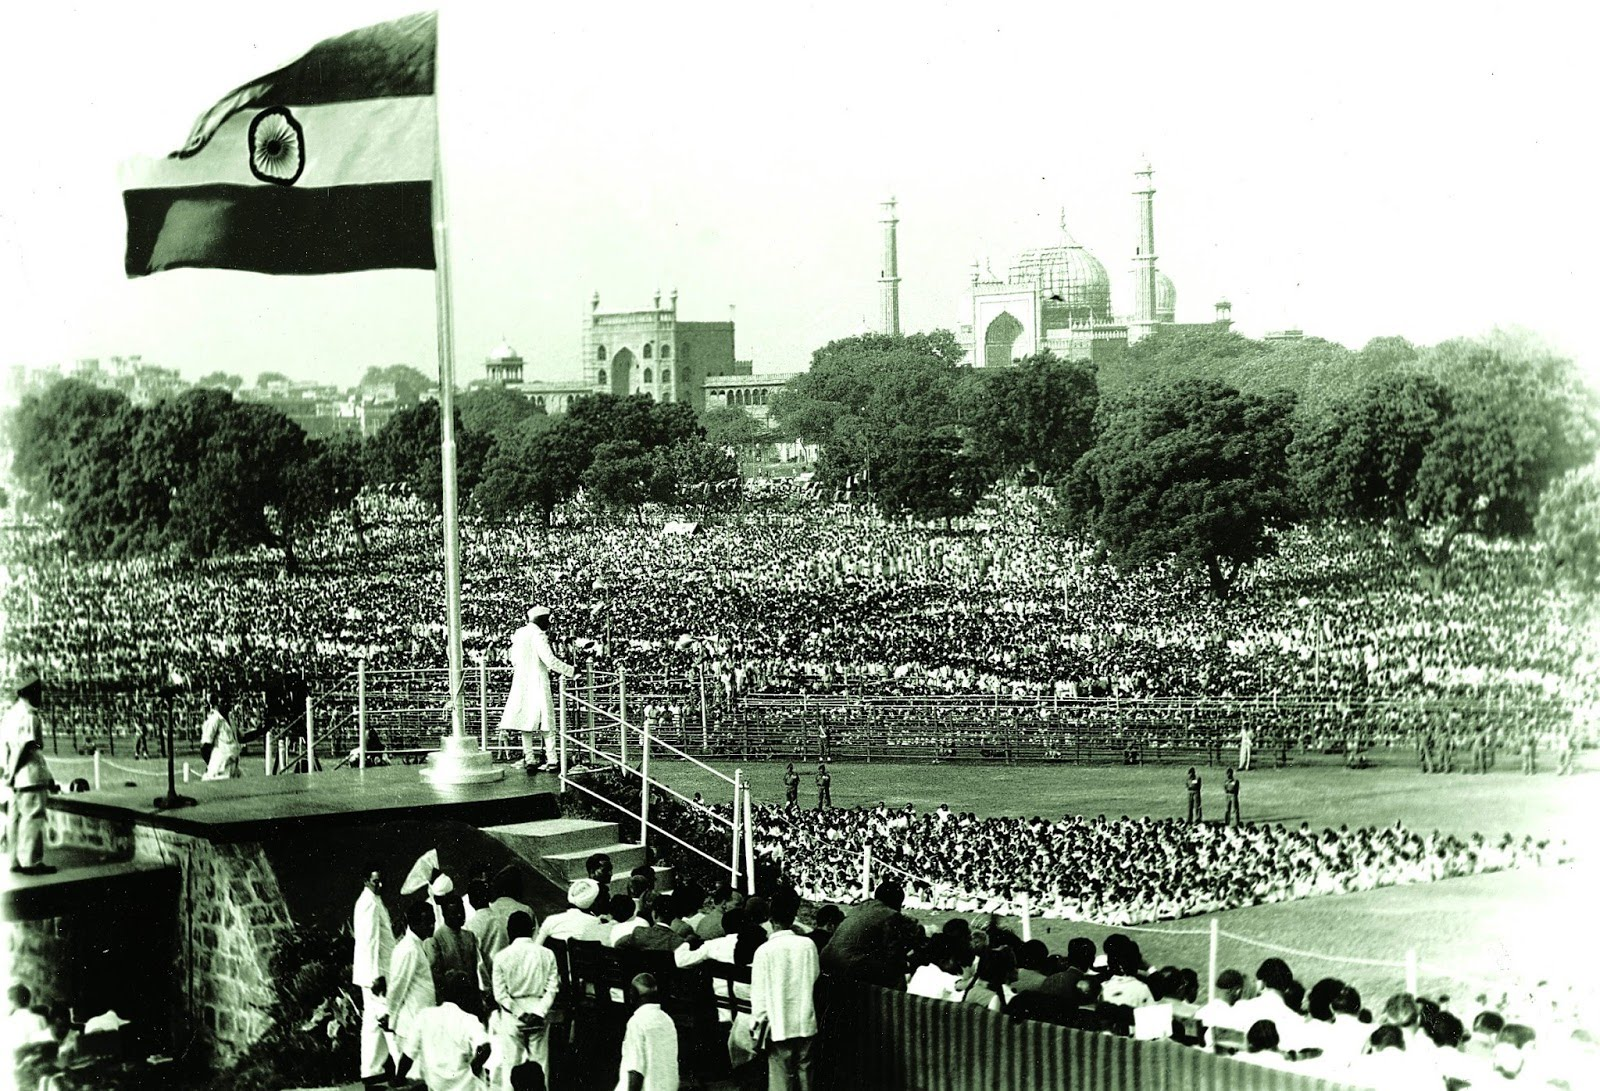 The Prime Minister, Pandit Jawaharlal Nehru, declaring the Independence